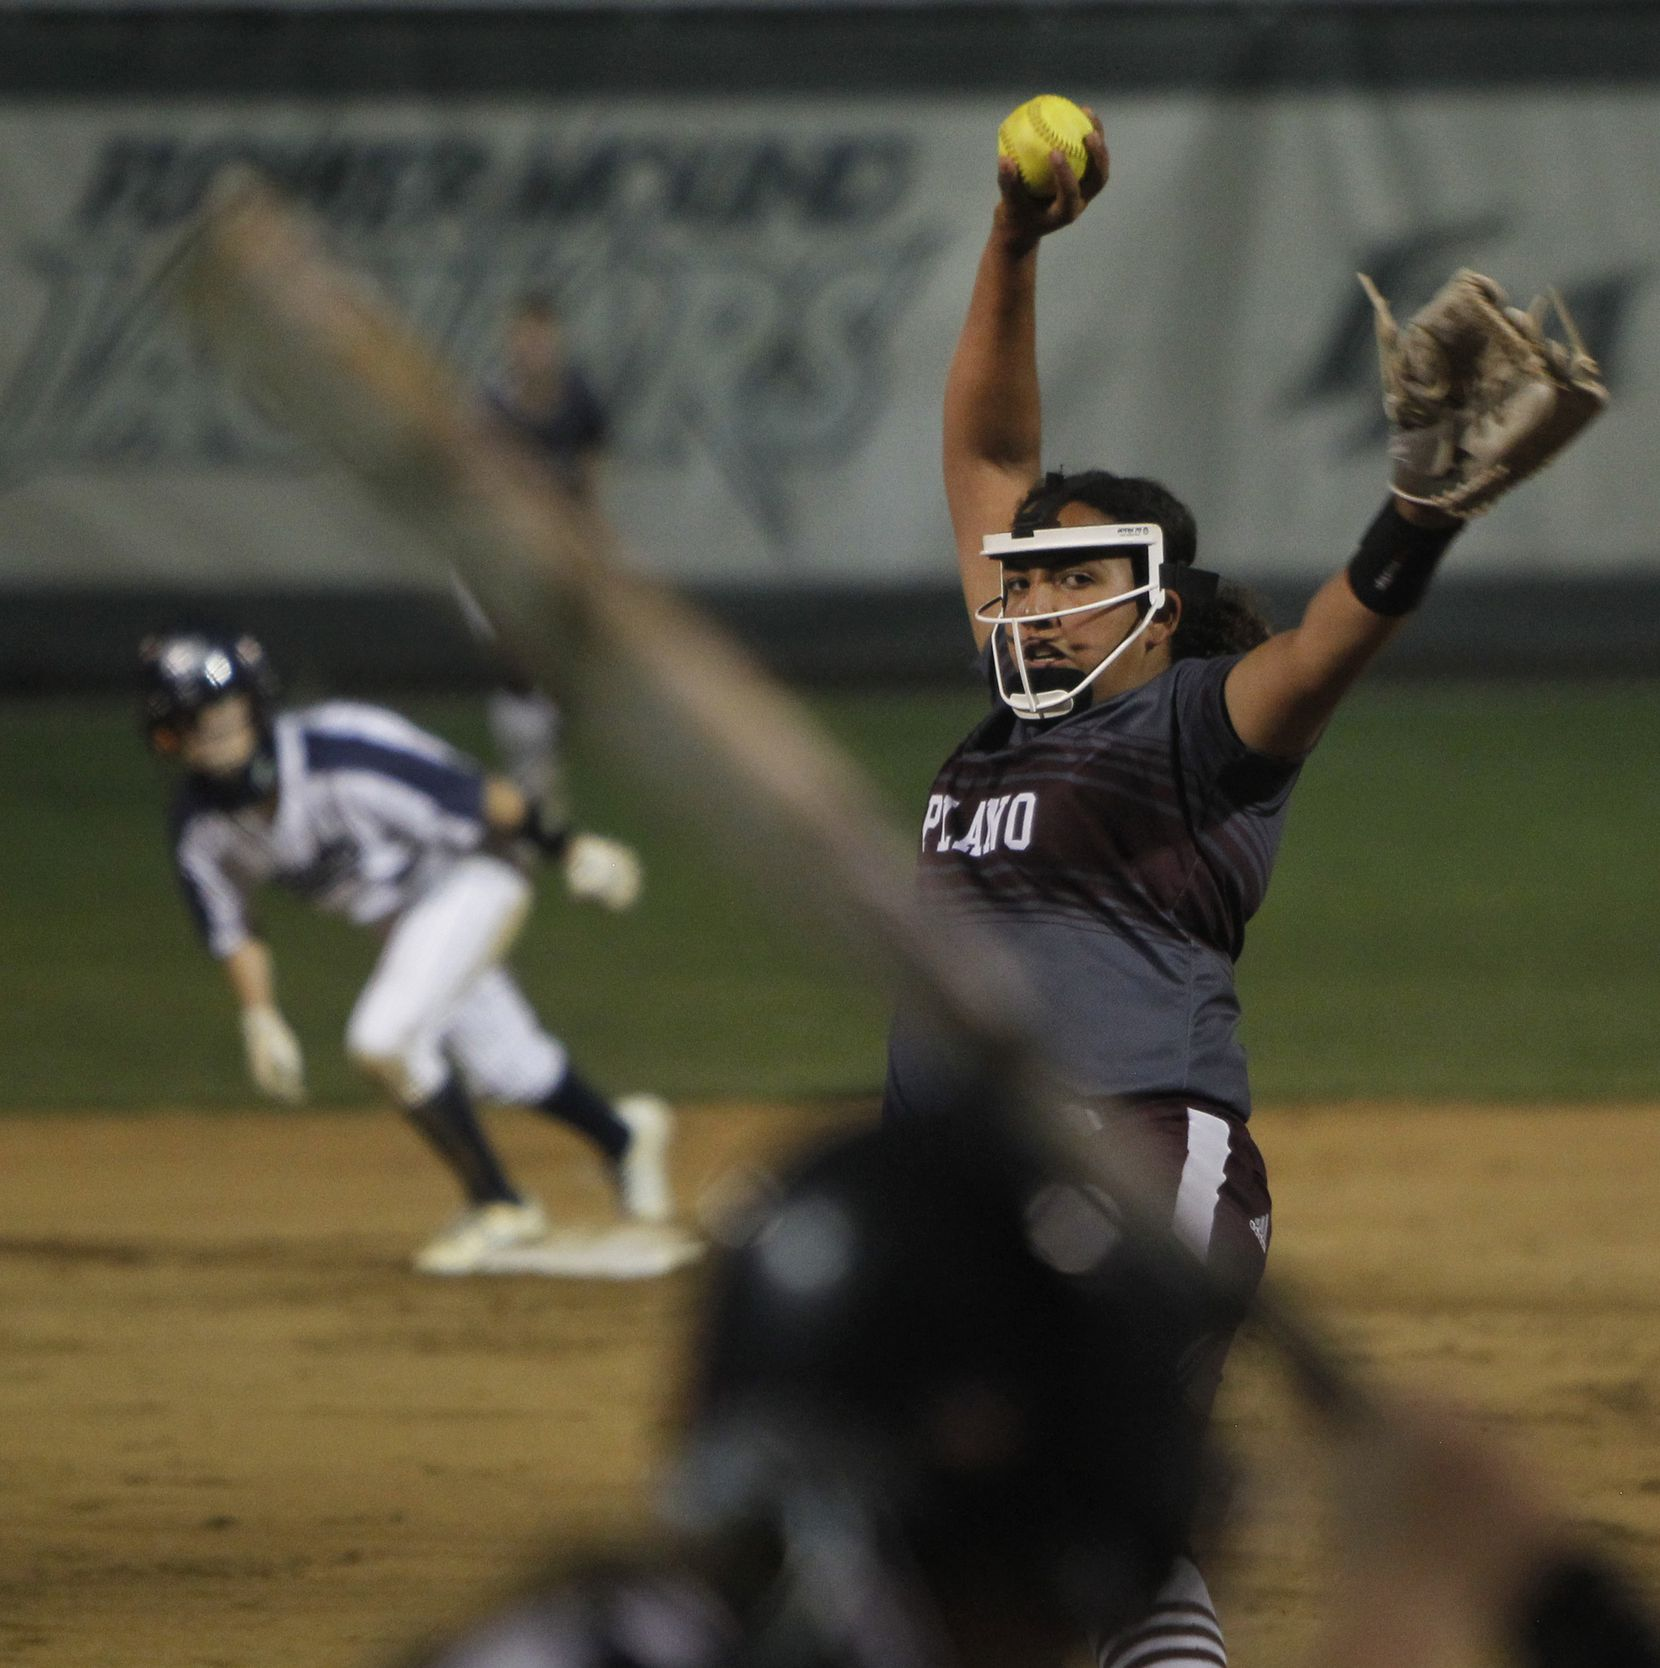 Plano pitcher Jayden Bluitt (20) prepares to deliver a pitch to a Flower Mound batter during the bottom of the 2nd inning of play. The two teams played their District 6-6A softball game at Flower Mound High School in Flower Mound on March 23, 2021. (Steve Hamm/ Special Contributor)